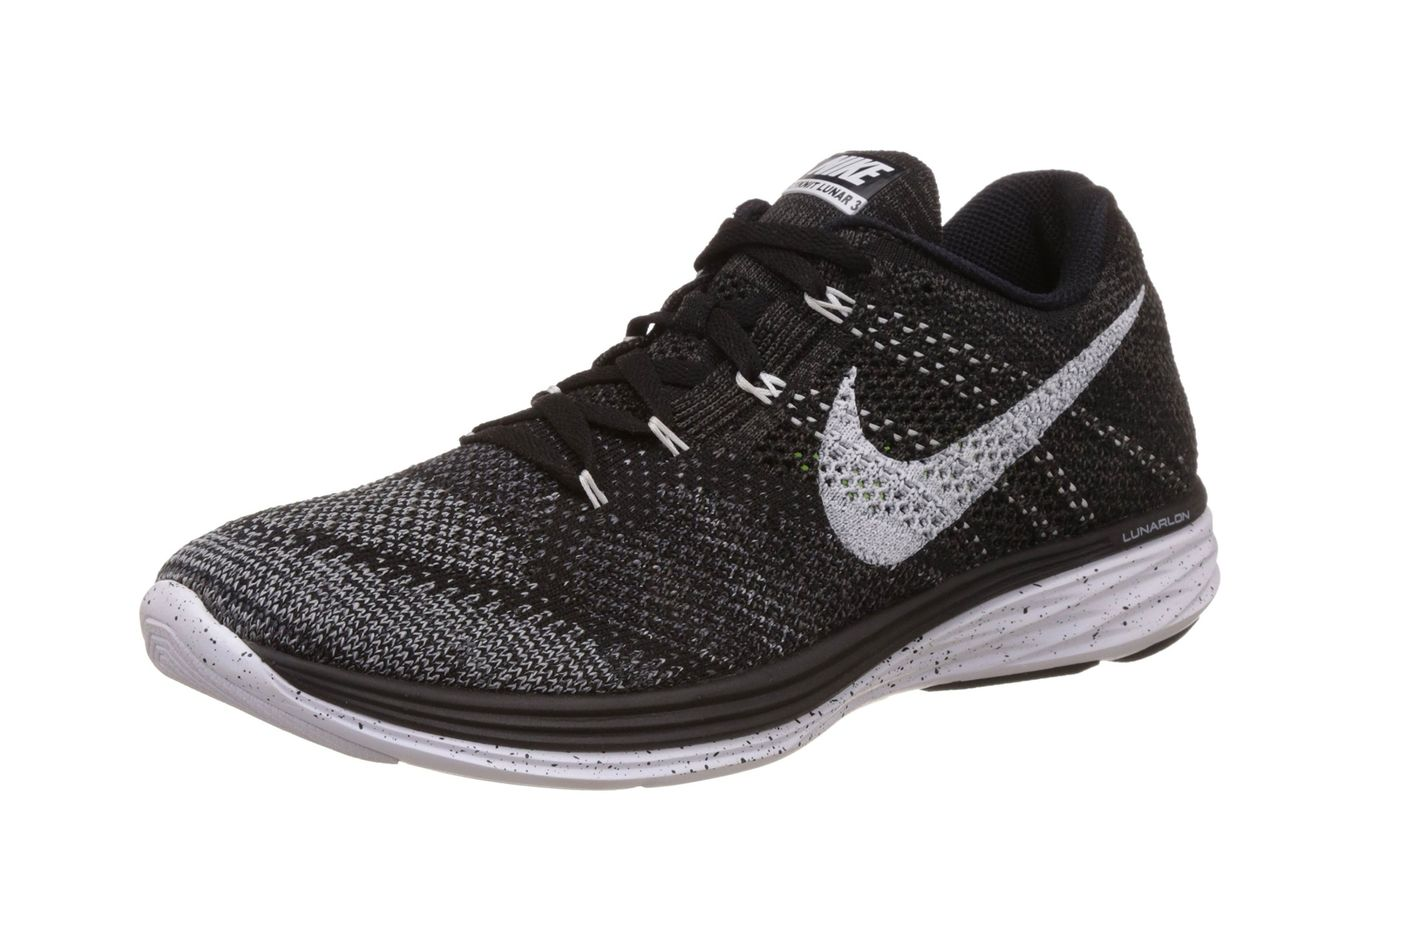 Nike Men's Flyknit Lunar 3 Running Shoe at Amazon